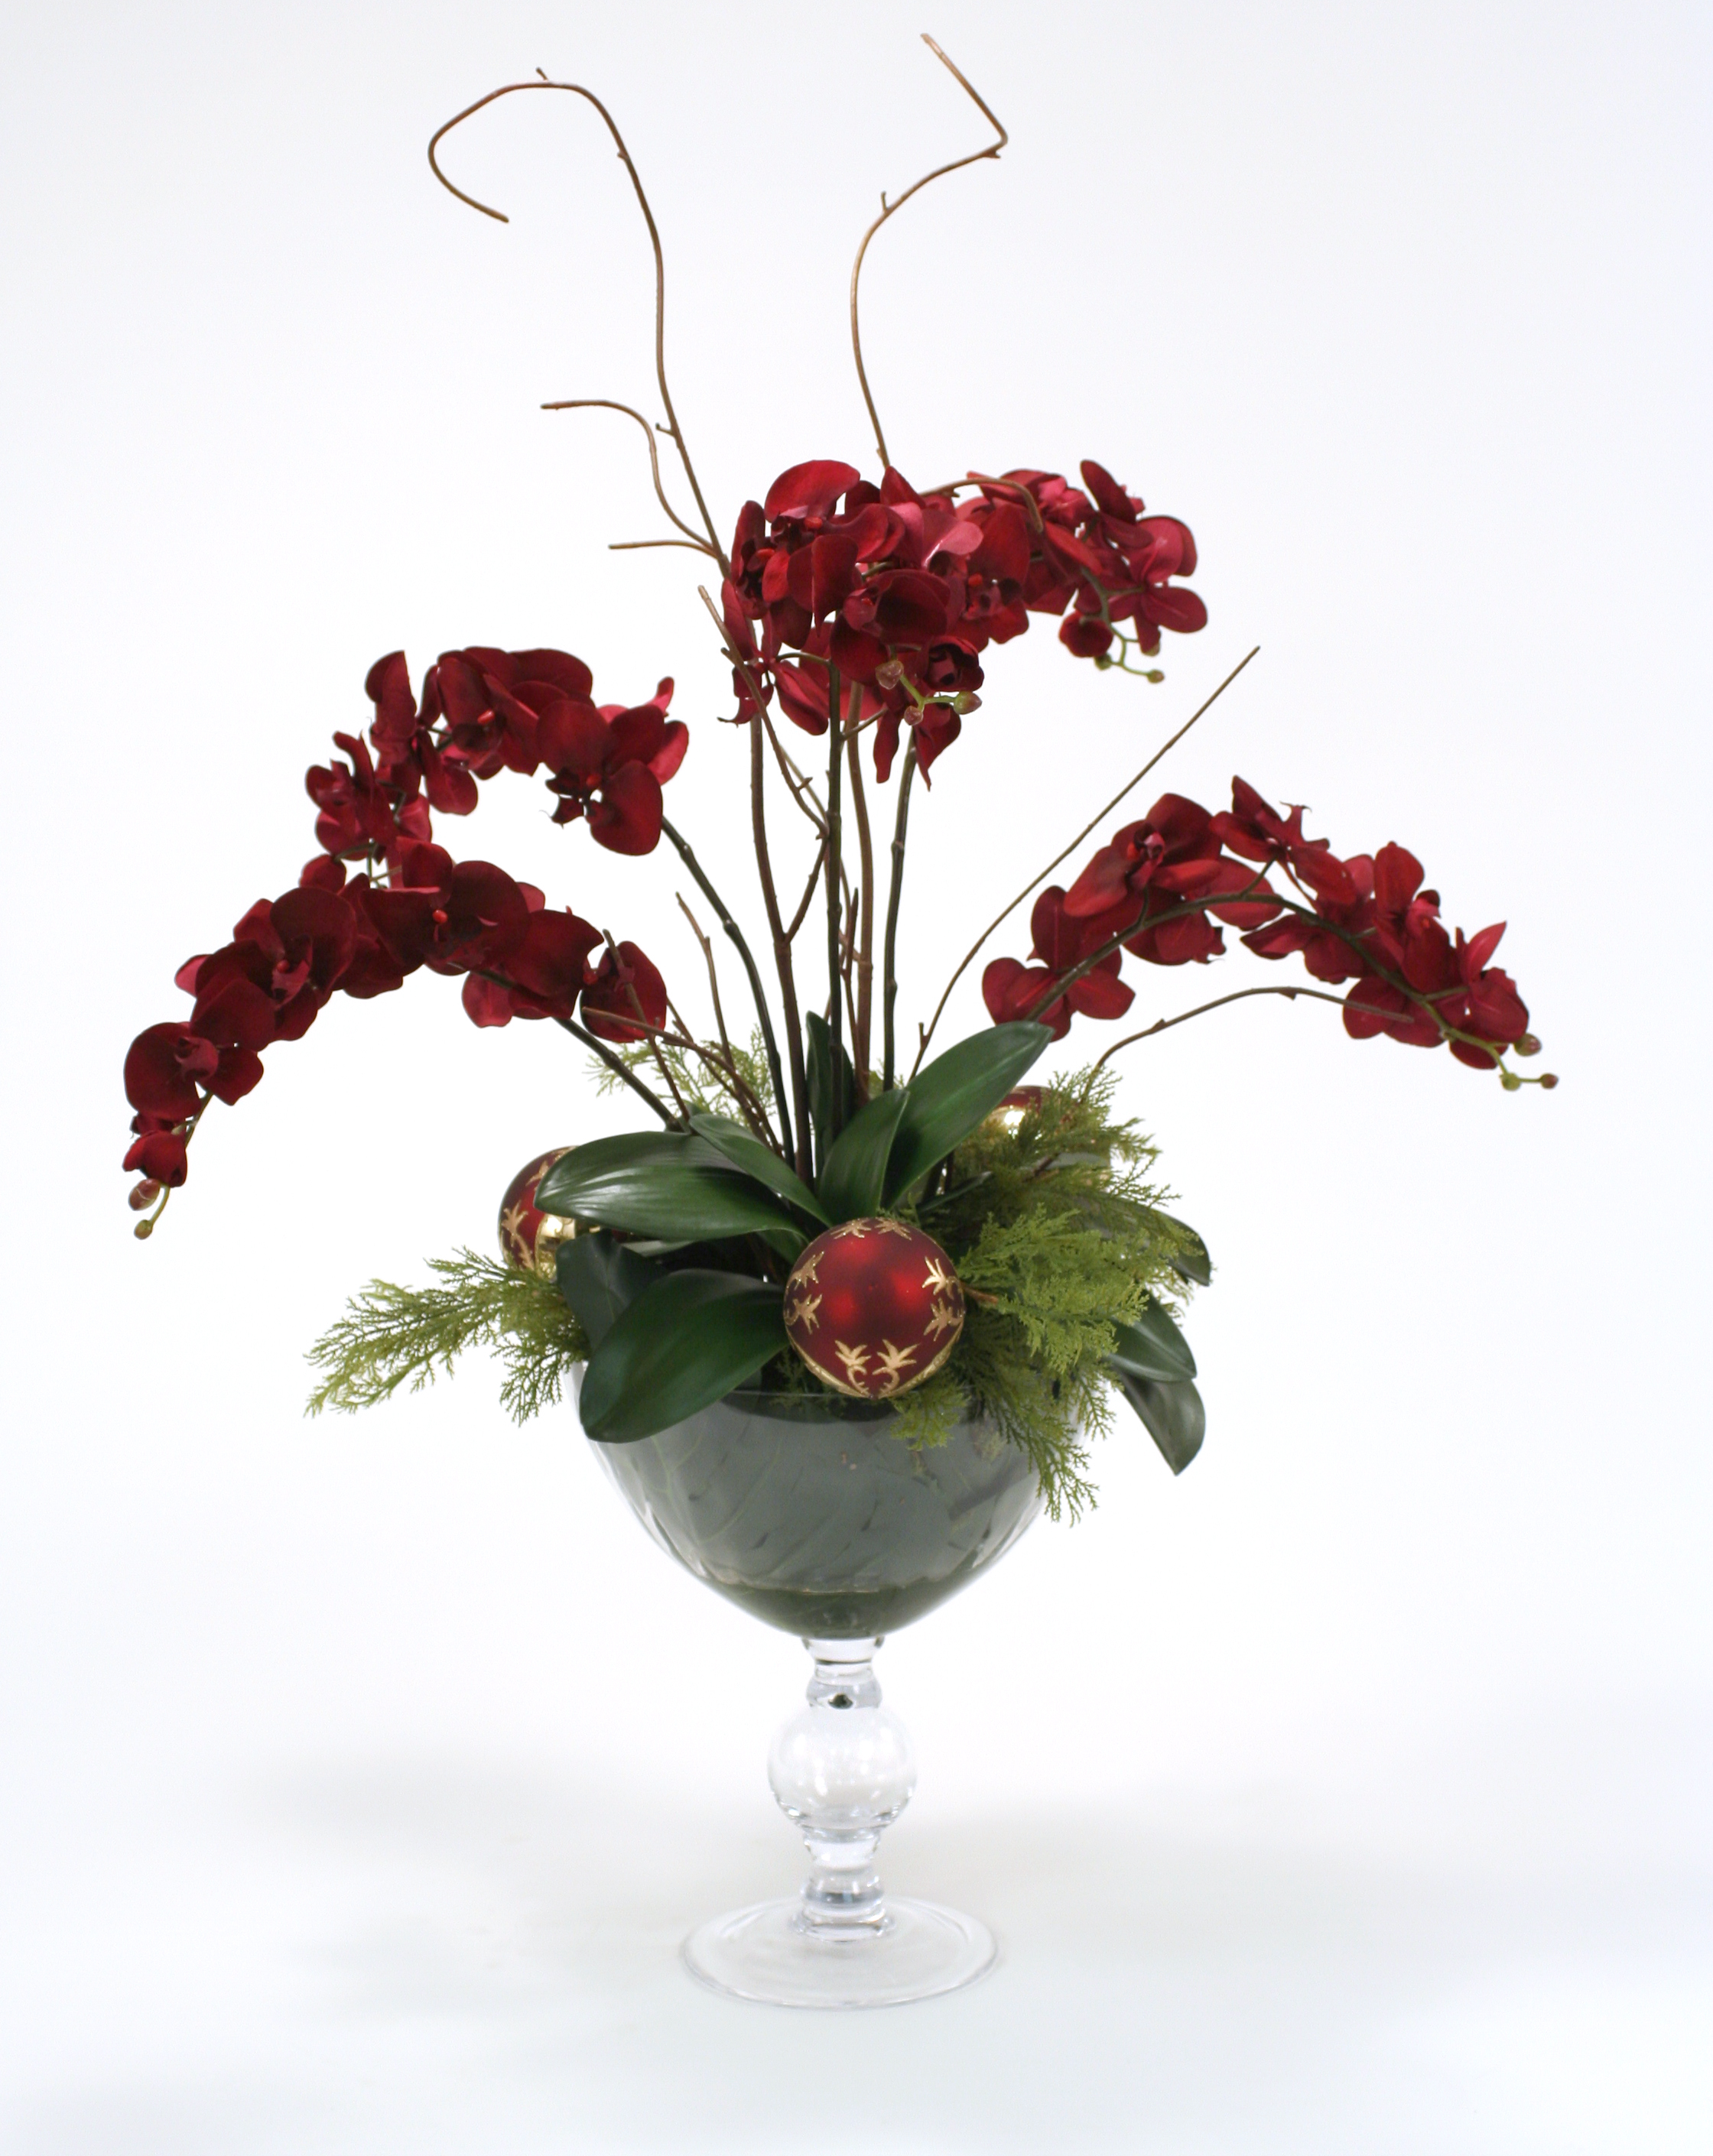 Velvet Phalaenopsis Orchids with Cedar and Ornaments in Glass Compote